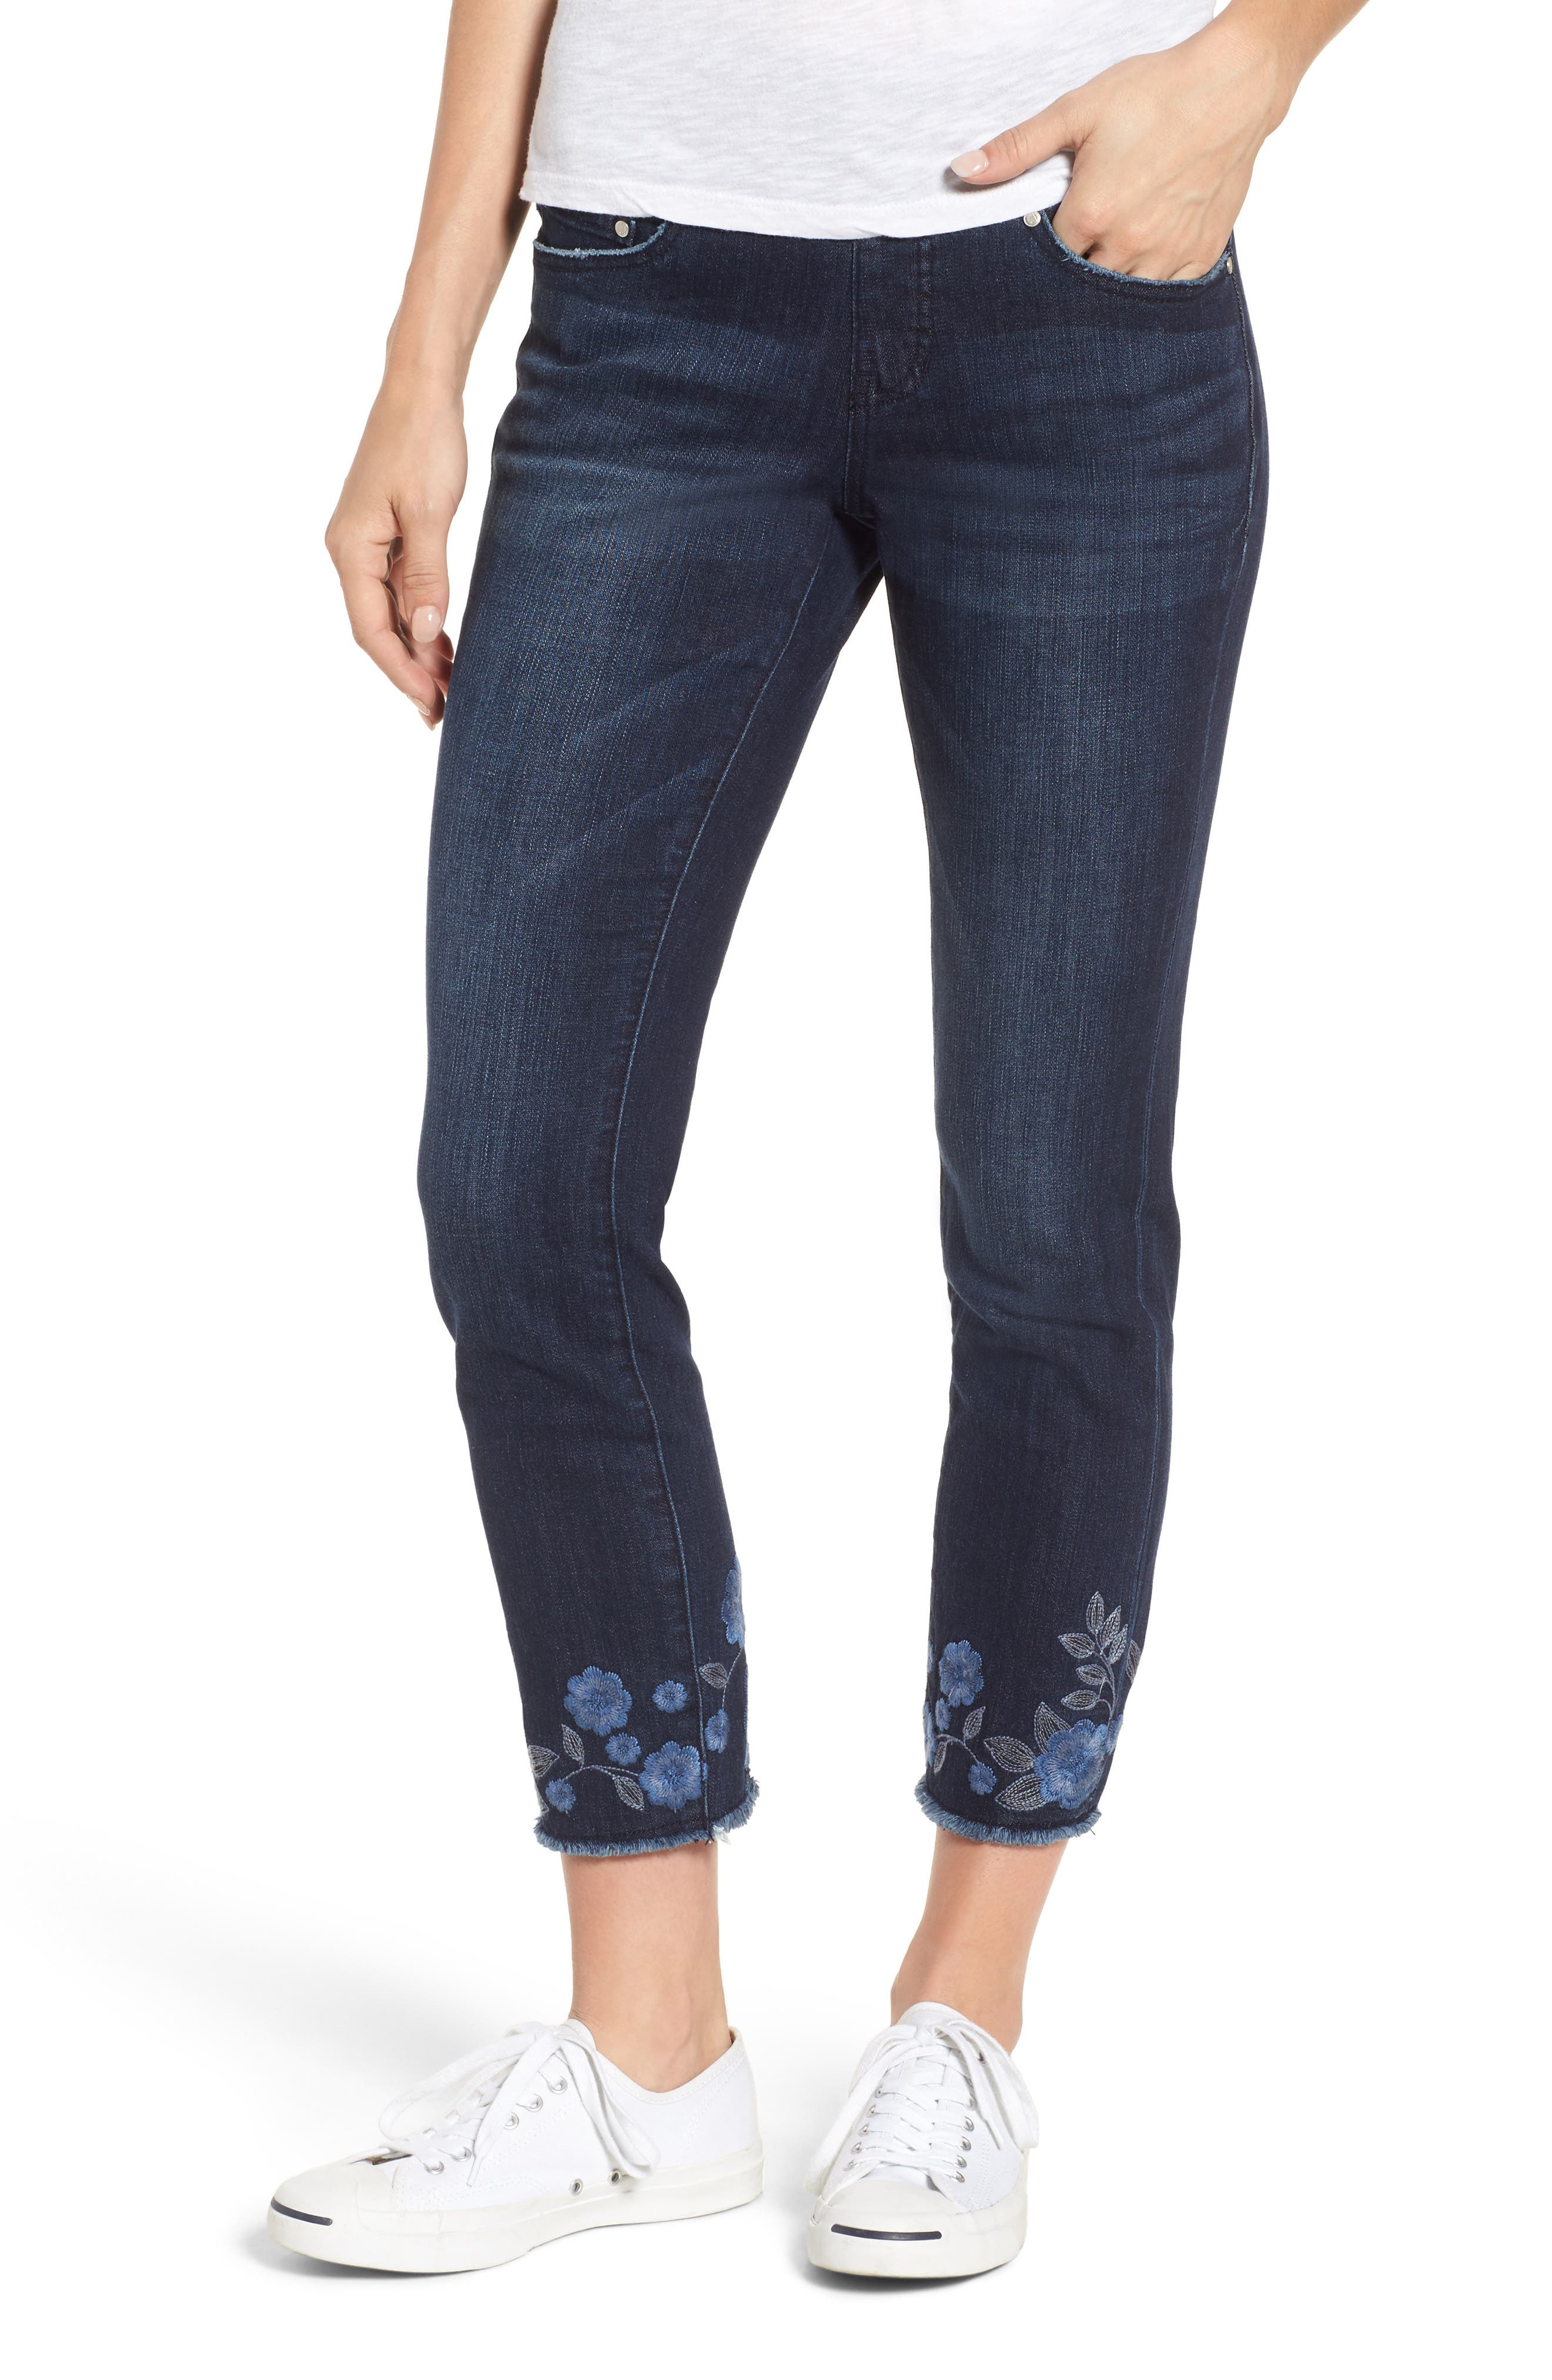 Main Image - Jag Jeans Amelia Embroidered Slim Ankle Jeans (Meteor)